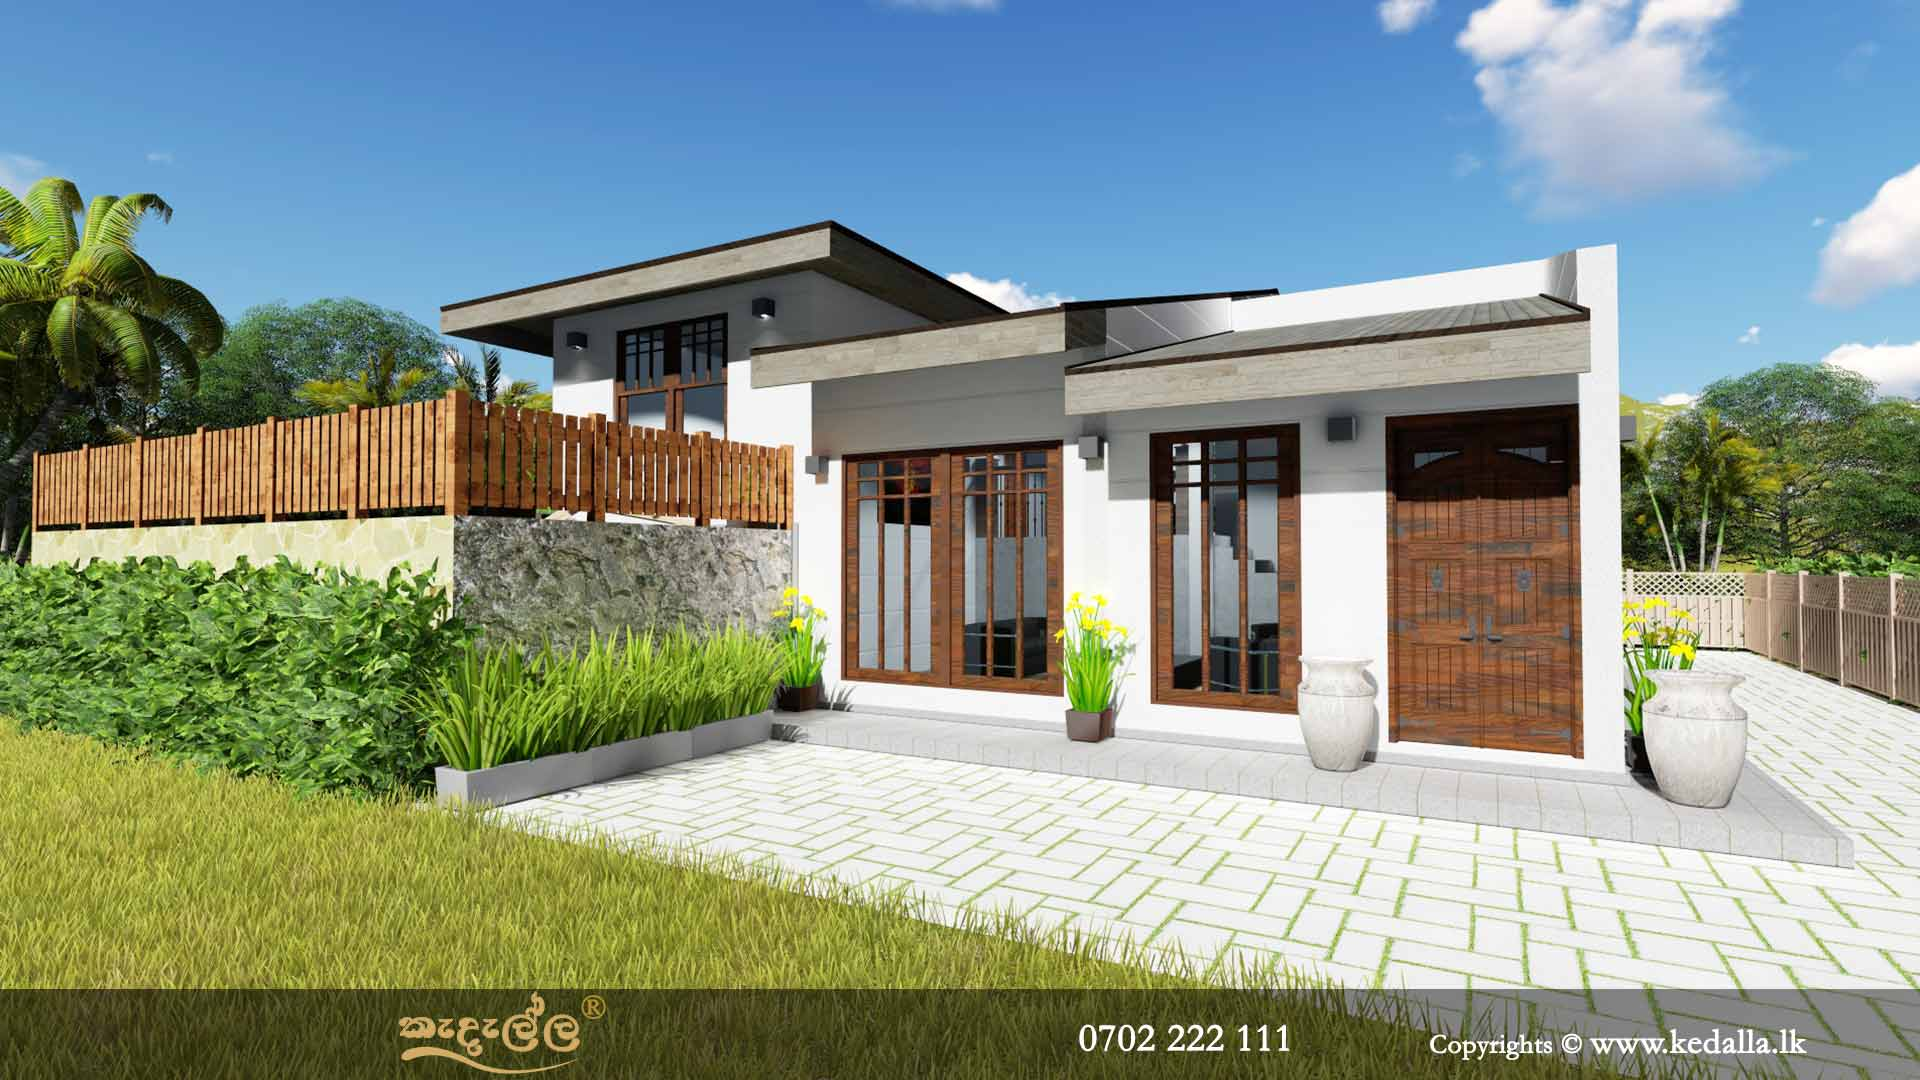 Small Home Plans single story - Get Modern 3 Bedroom House Low Cost Small House Design Background